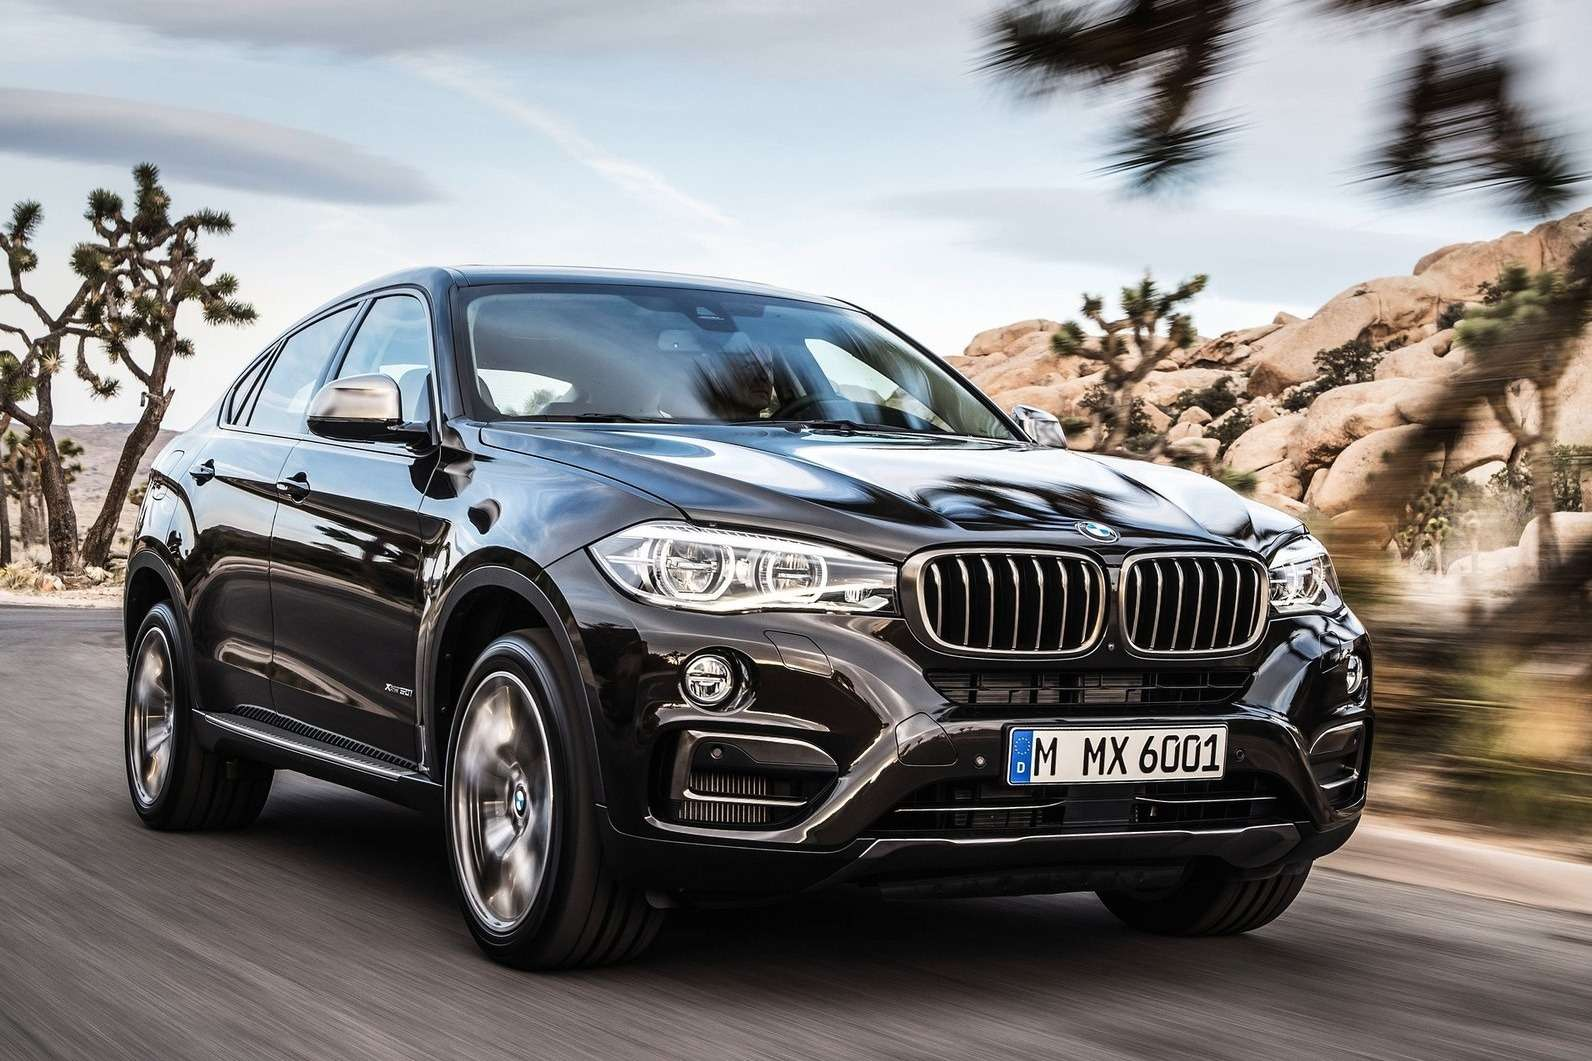 BMW-X6_2015_1600x1200_wallpaper_0e